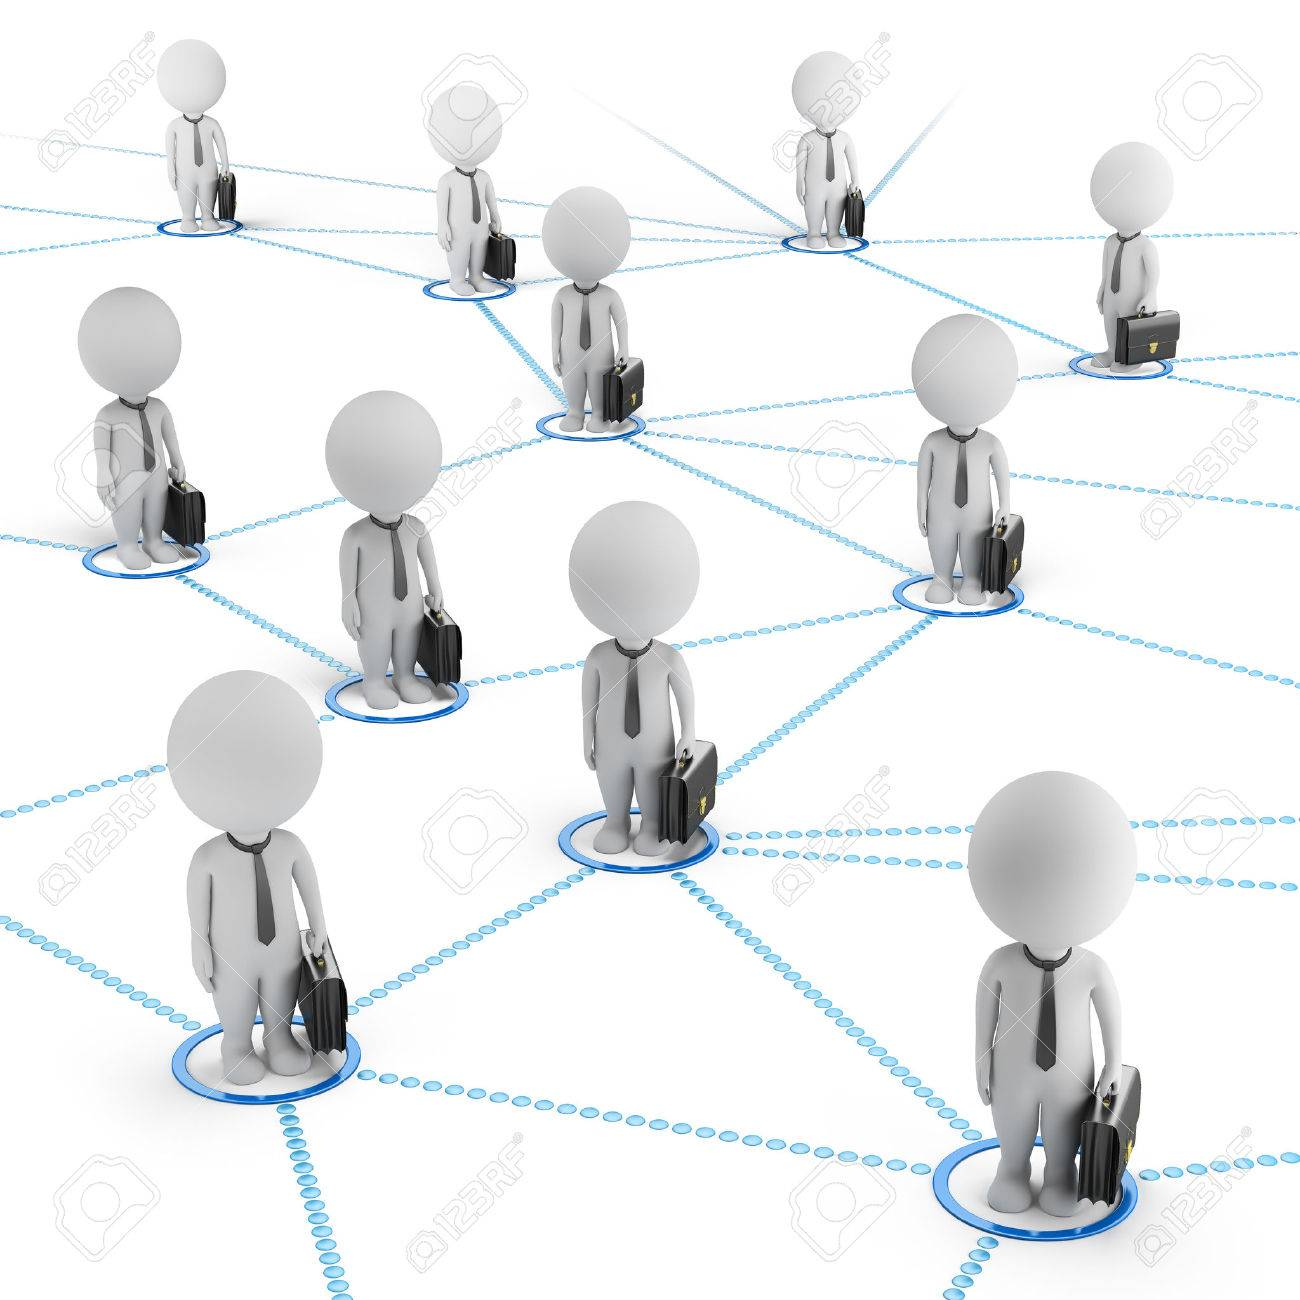 3d small people - businessmen standing in the global network of cells 3d image White background - 29691196